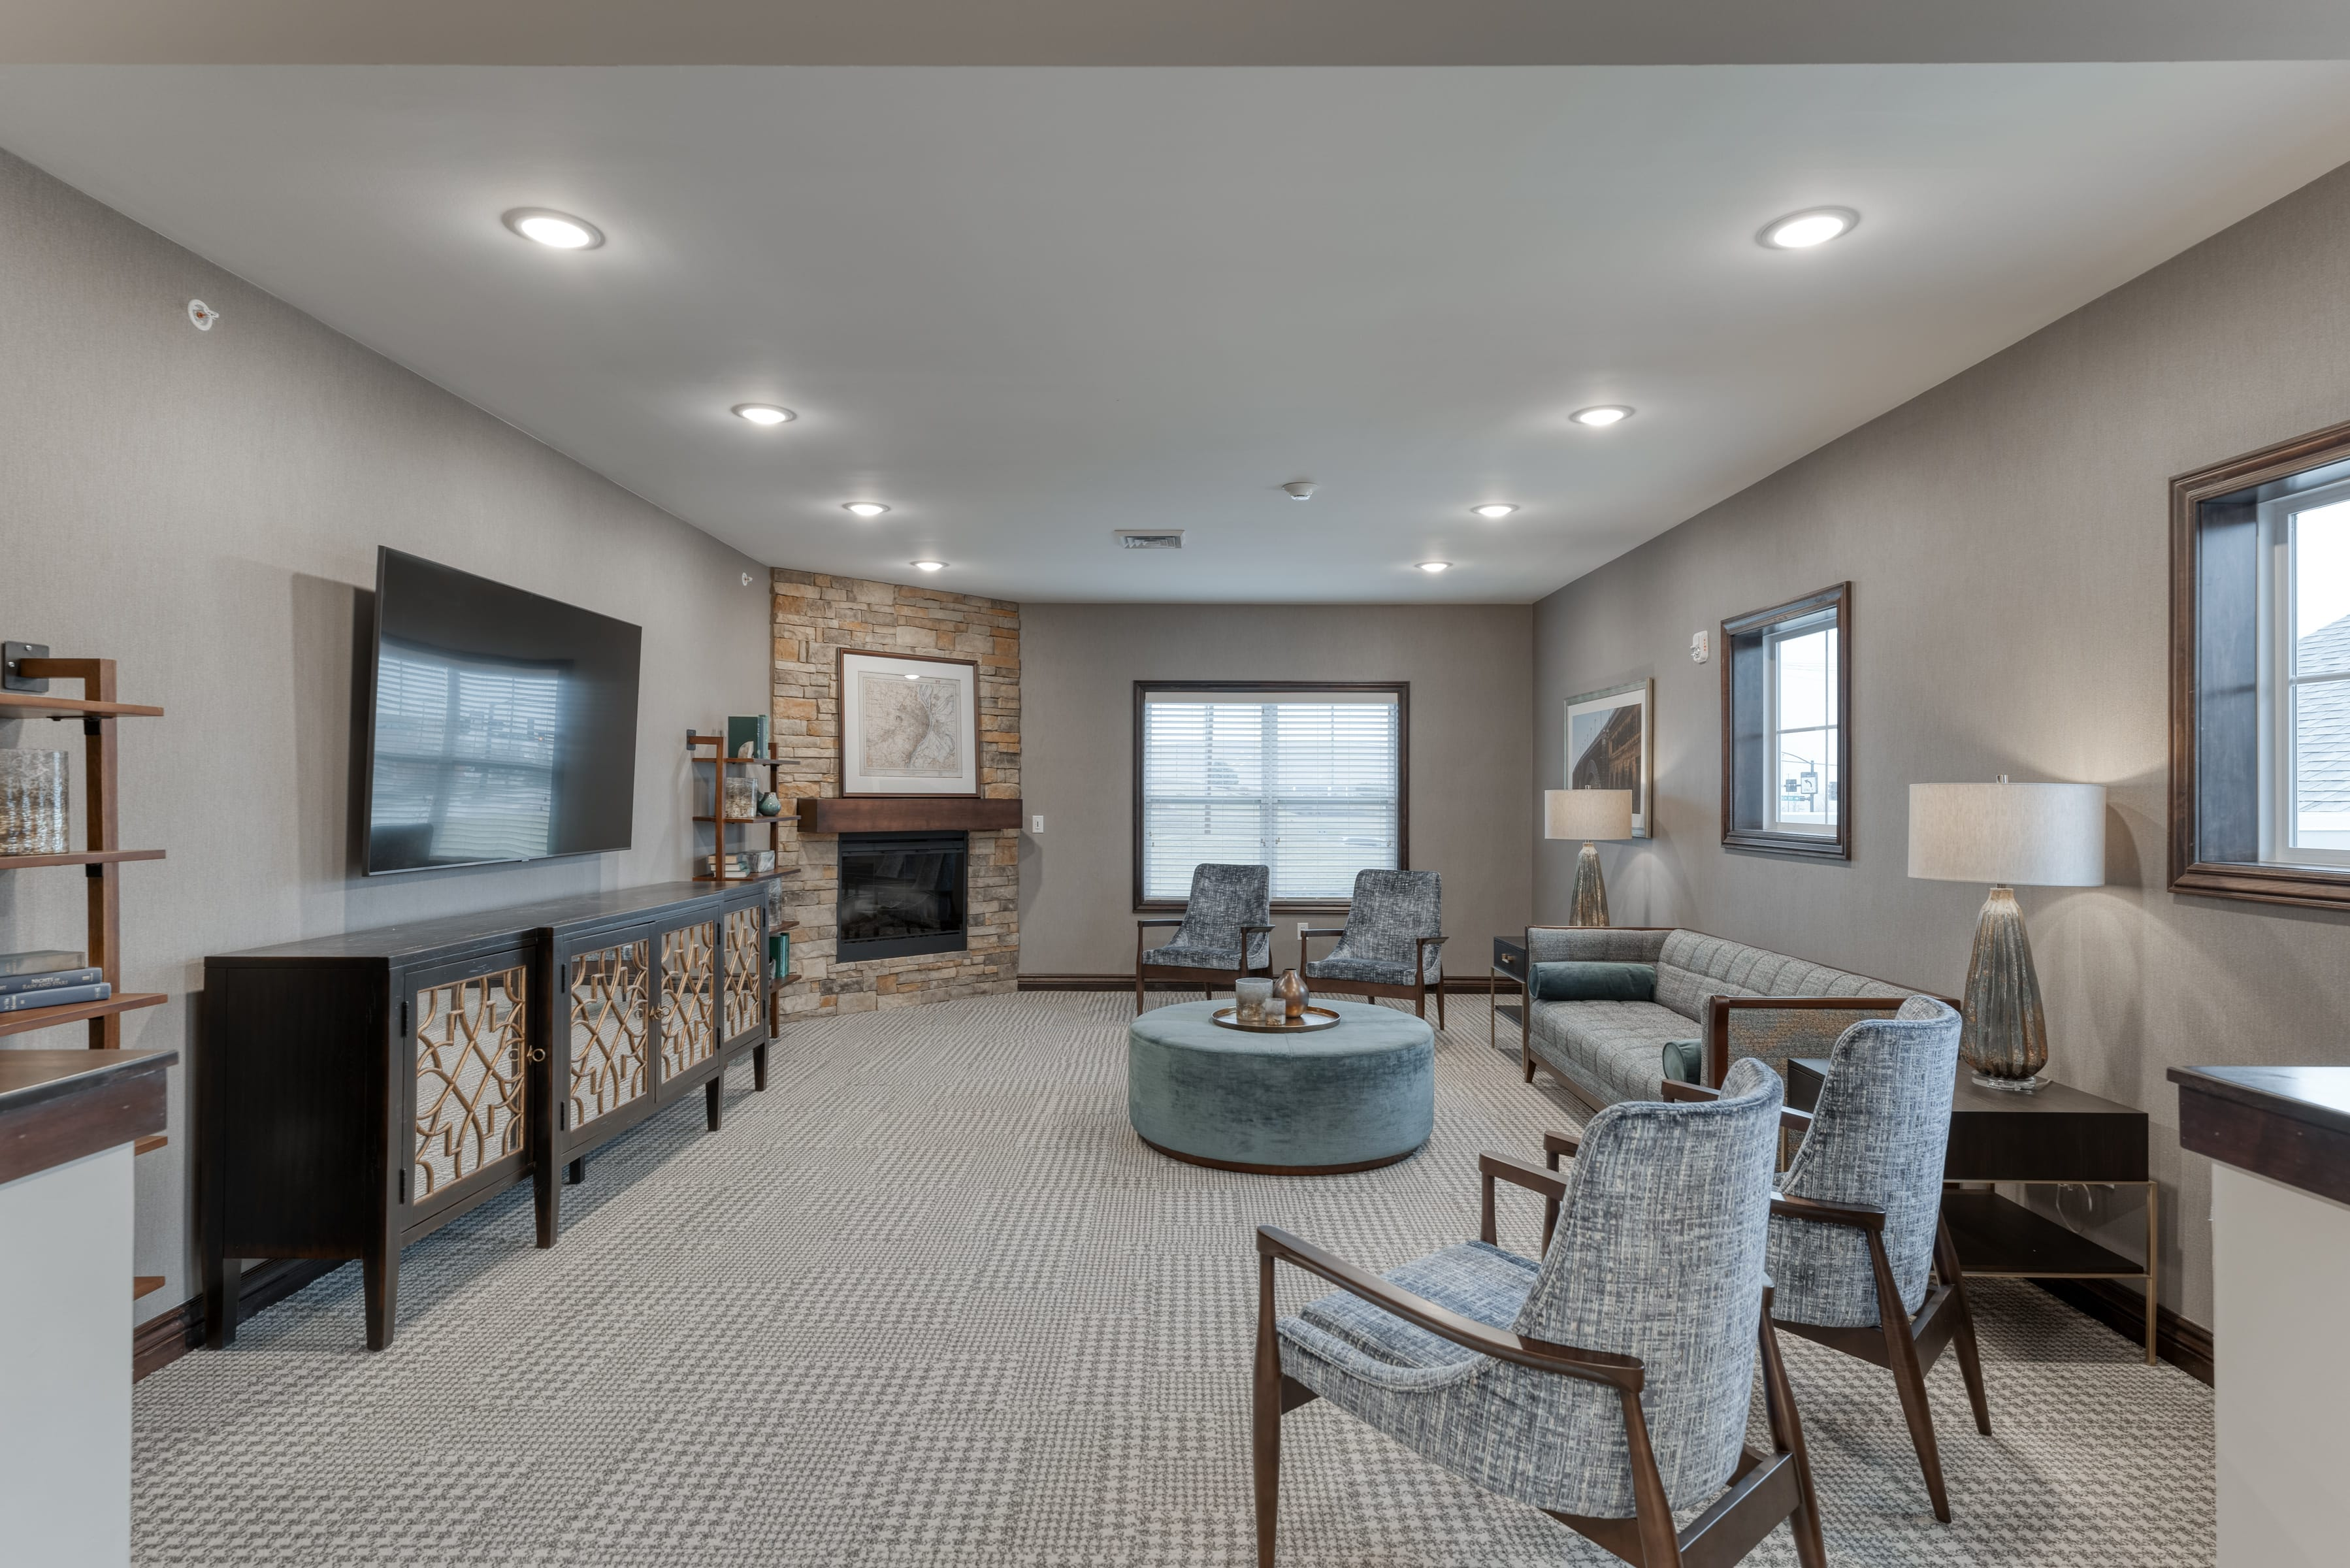 A group living room with a custom stone fireplace and built-in shelving